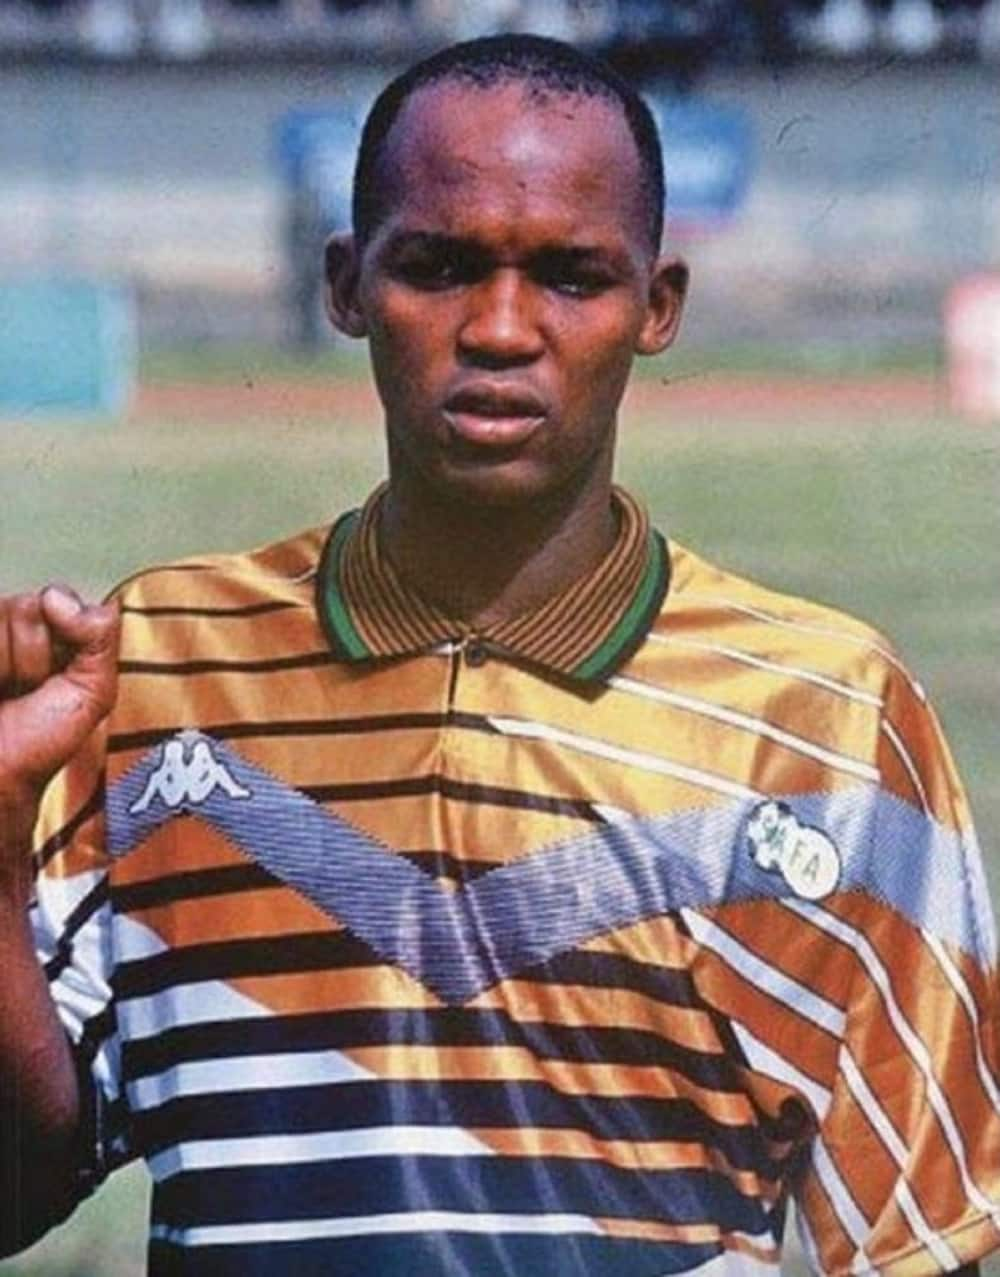 Pitso Mosimane: A detailed look at the legendary South African coach